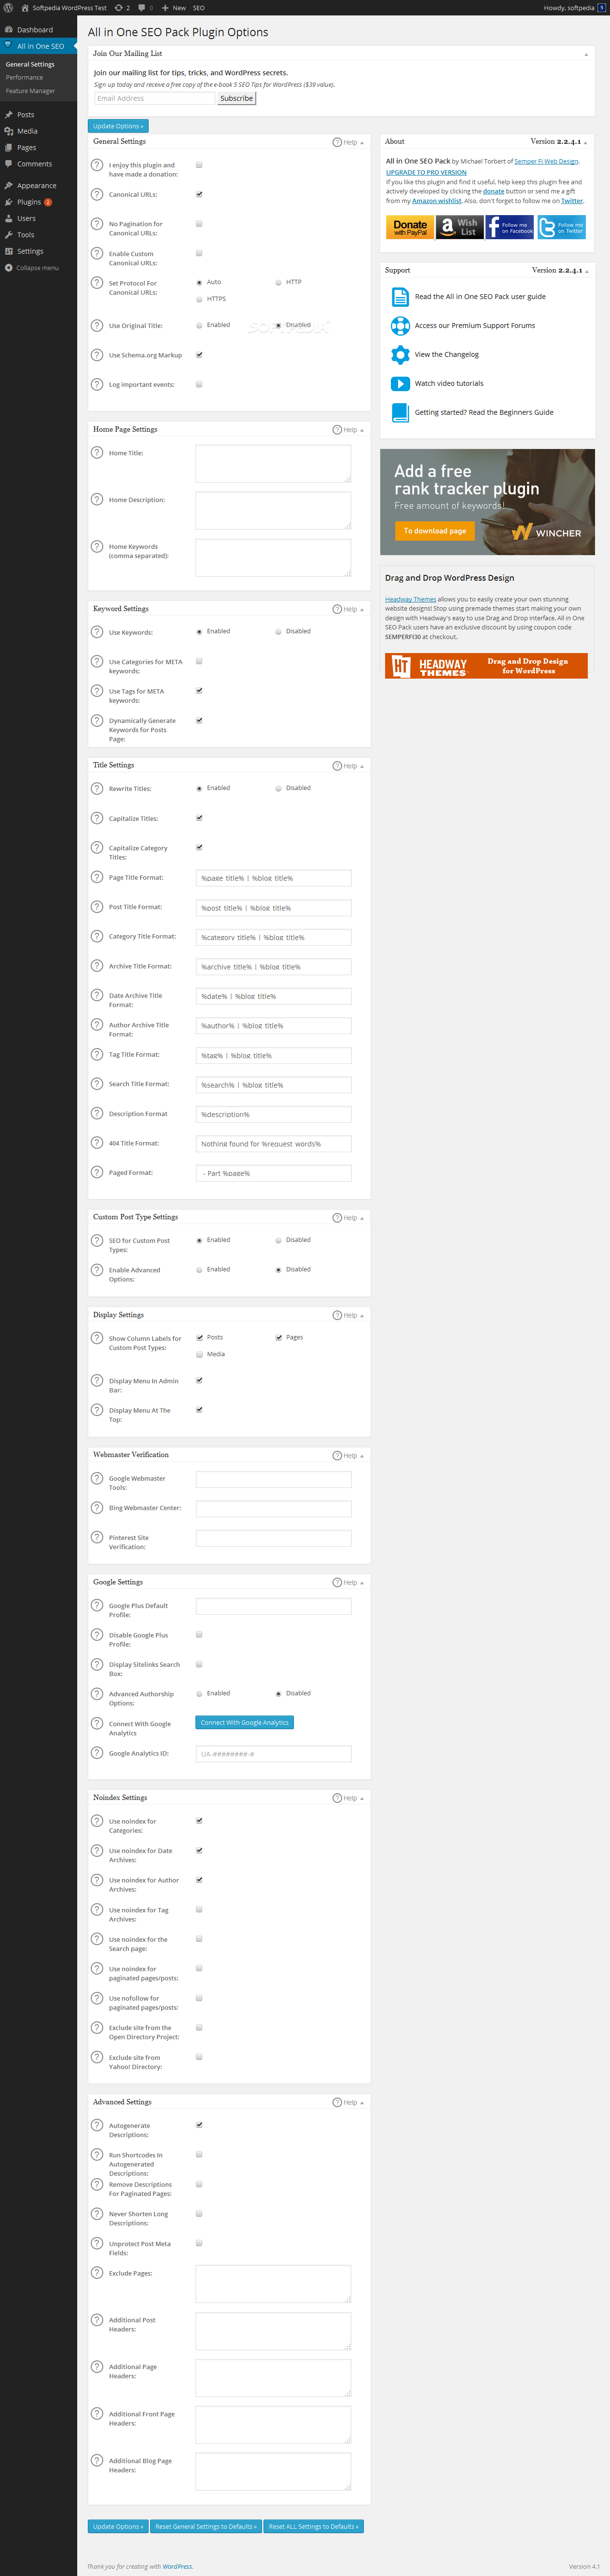 All in One SEO Pack - screenshot #1